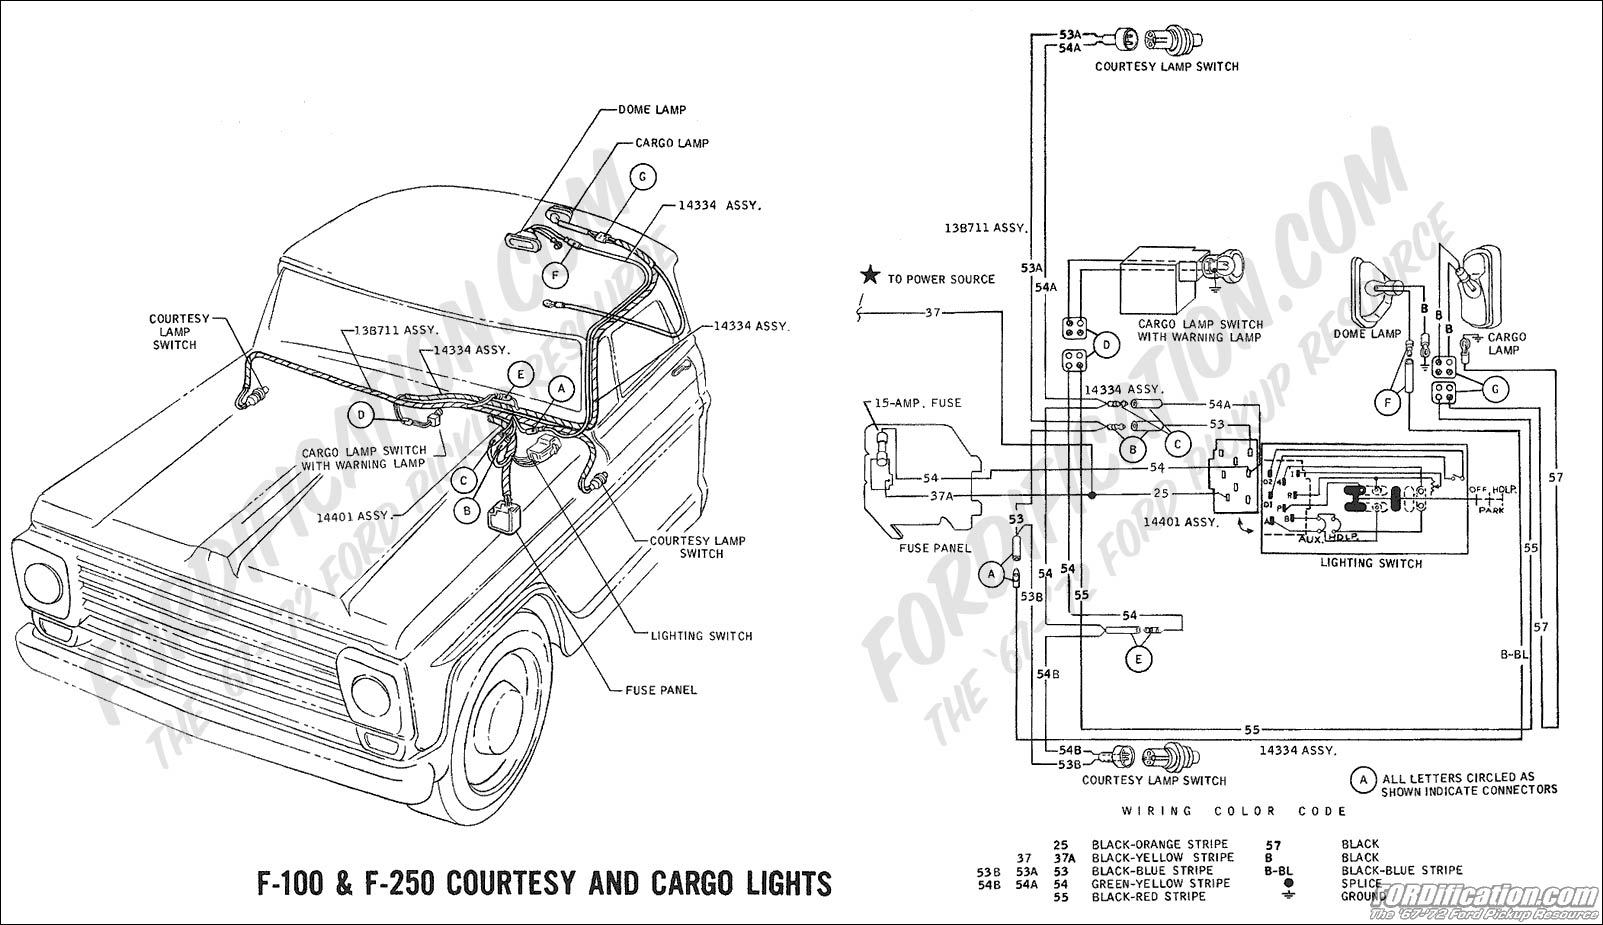 1972 Ford F100 Wiring Diagram Online Wire Harness 1970 Truck Diagrams Scematic 71 1969